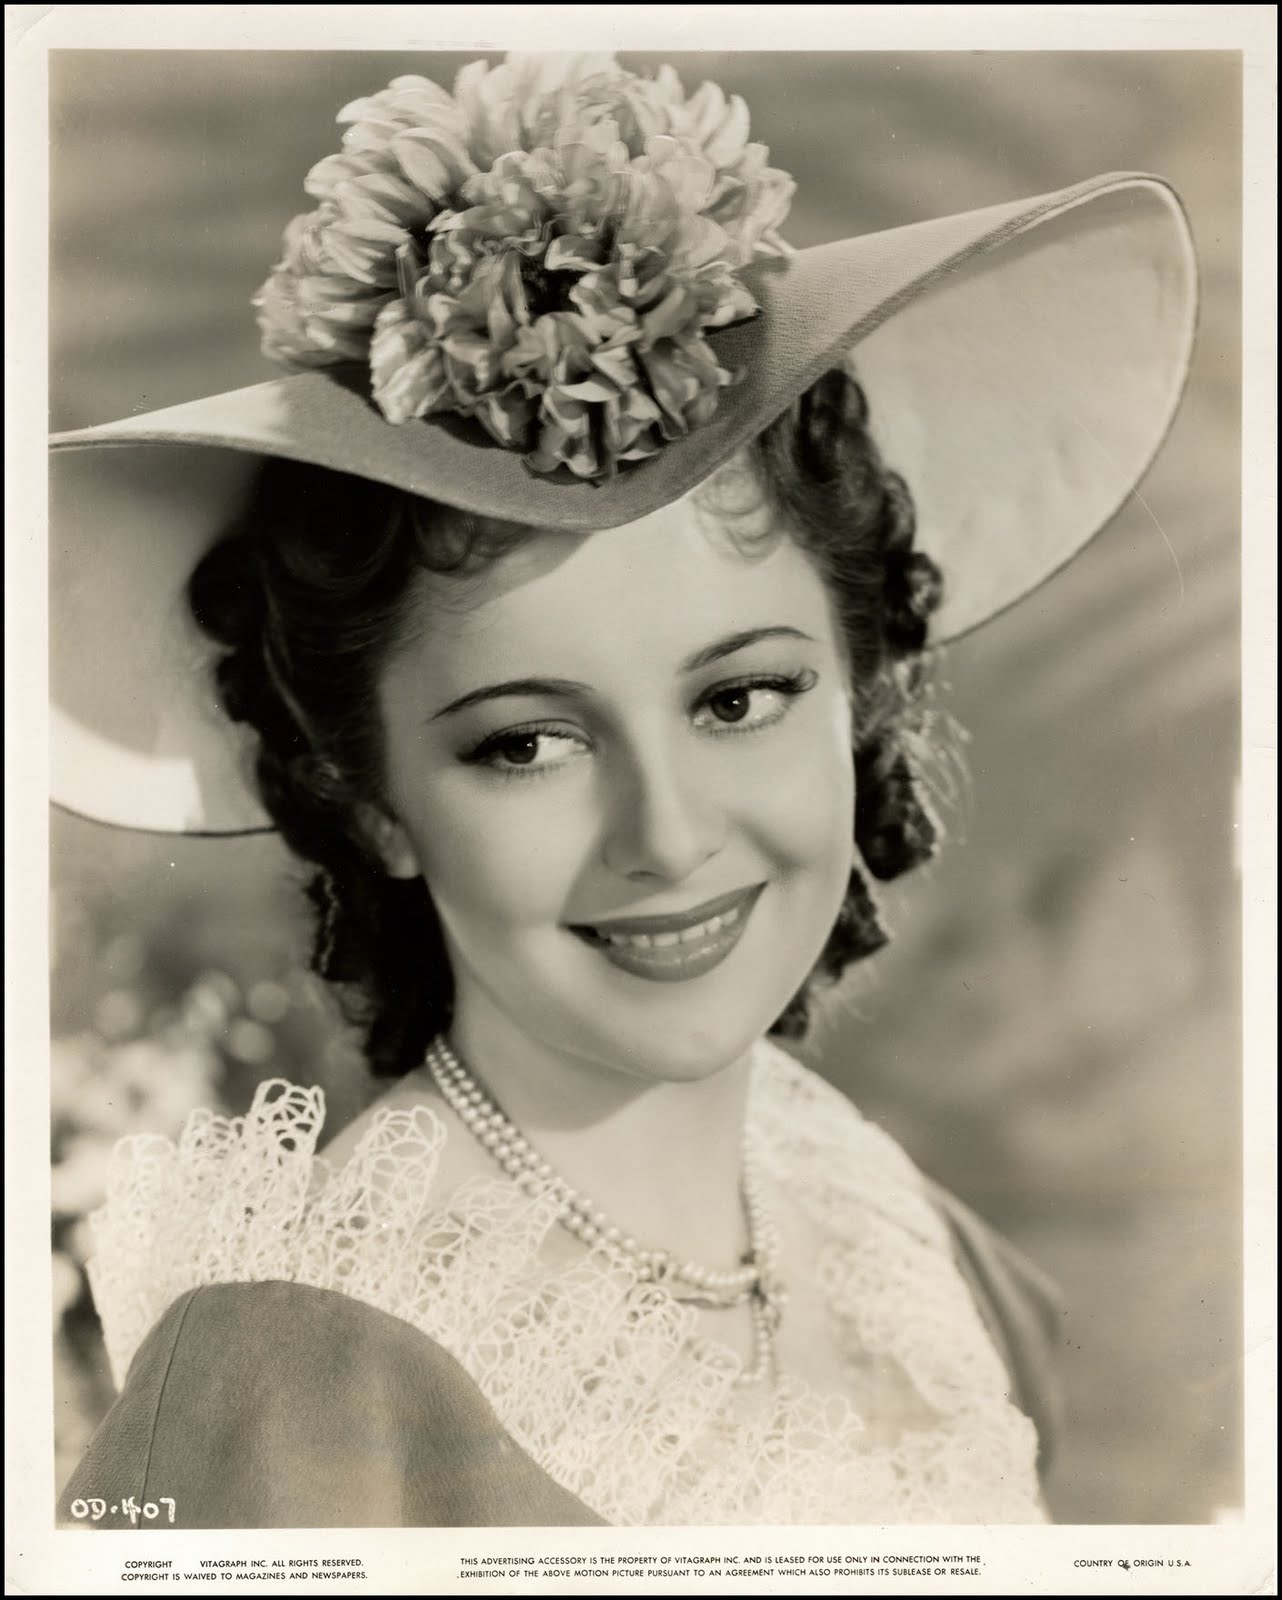 olivia de havilland wikipediaolivia de havilland 2016, olivia de havilland 2015, olivia de havilland now, olivia de havilland today, olivia de havilland joan fontaine, olivia de havilland 2017, olivia de havilland height, olivia de havilland films, olivia de havilland daughter, olivia de havilland imdb, olivia de havilland wikipedia, olivia de havilland betty davis, olivia de havilland 2014, olivia de havilland old, olivia de havilland as melanie hamilton, olivia de havilland vs joan fontaine, olivia de havilland quotes, olivia de havilland 100, olivia de havilland bette davis, olivia de havilland melanie wilkes